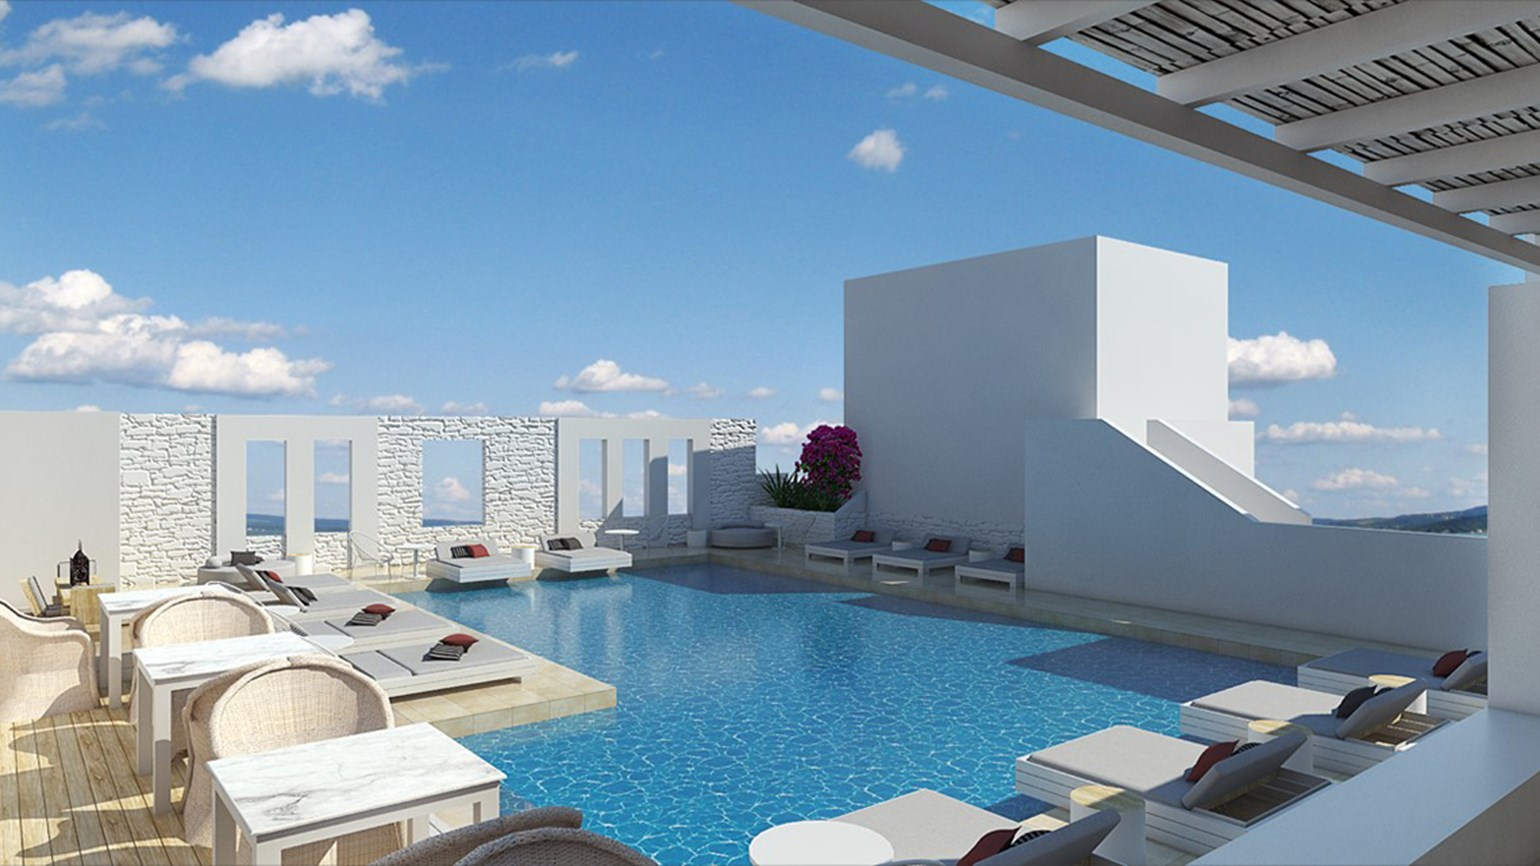 Mr. & Mrs. White oceanfront hotel opening in Greece